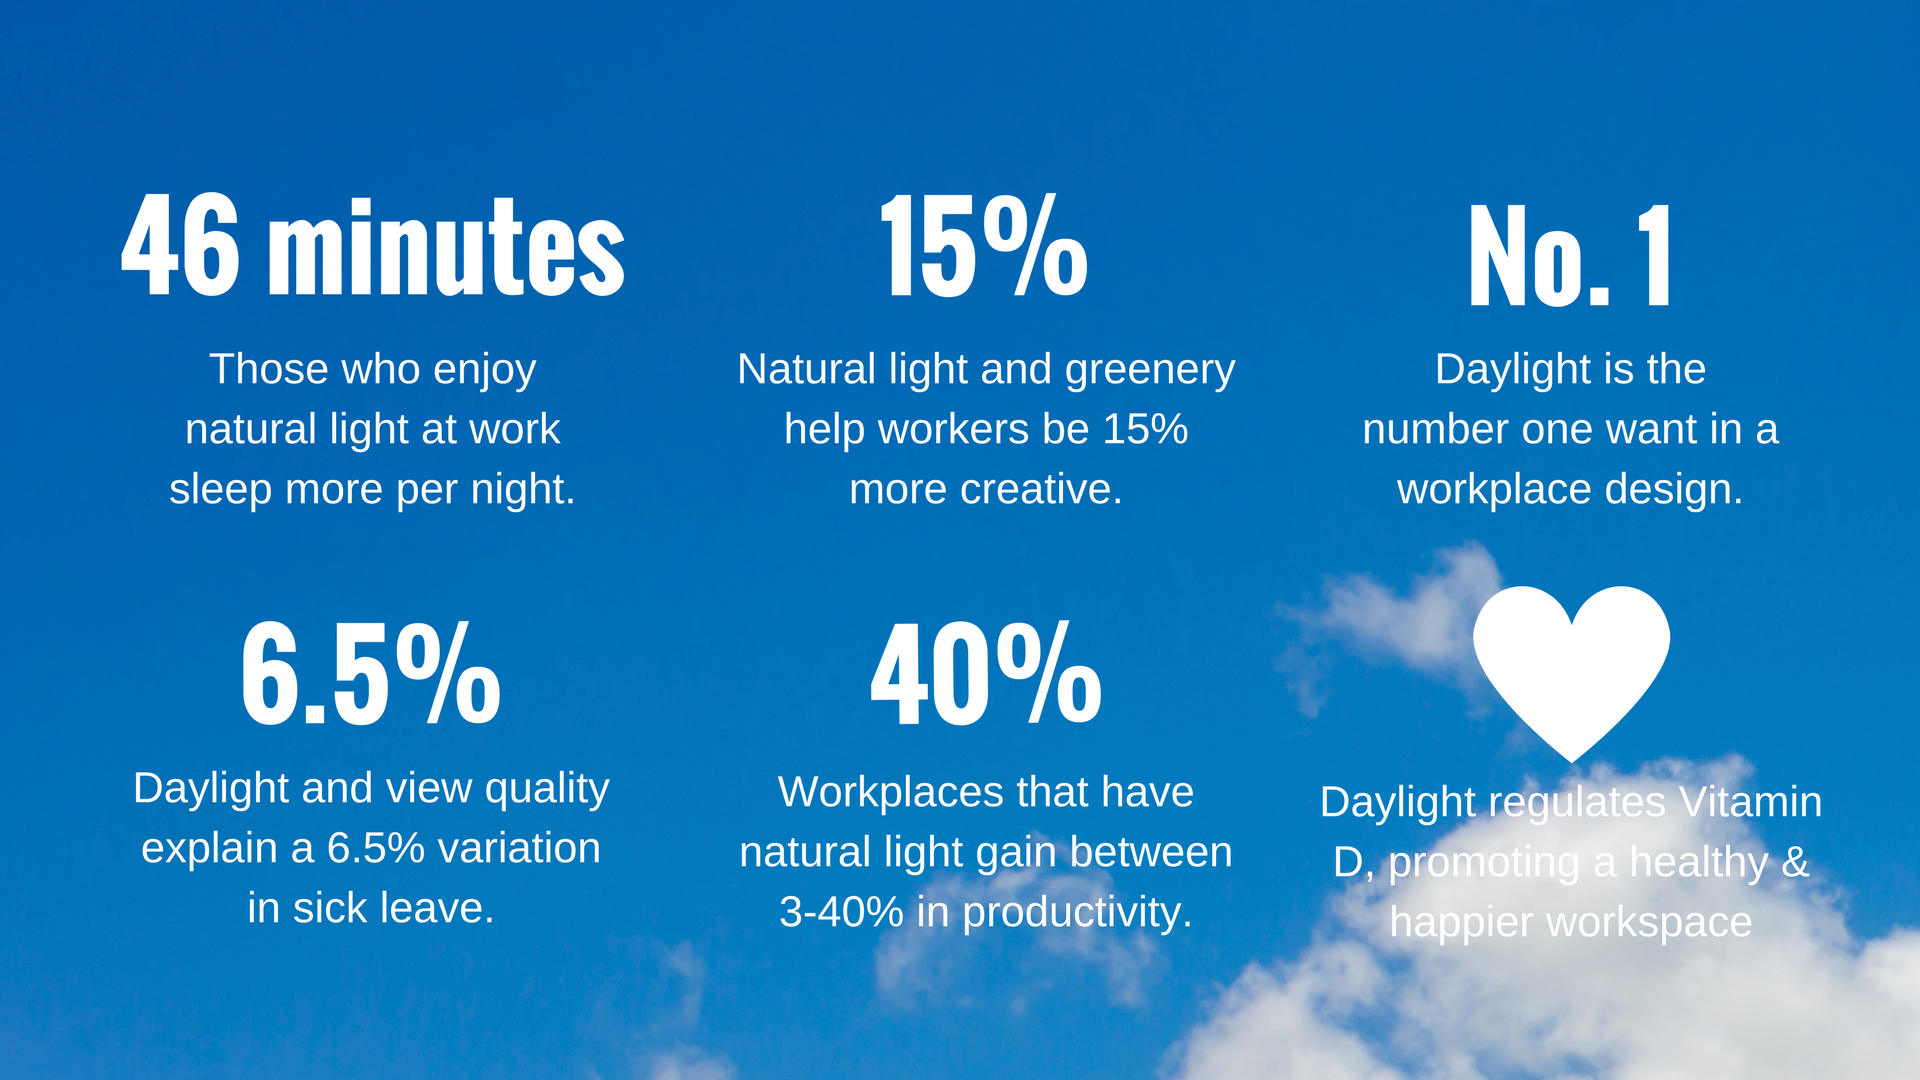 Natural light benefits summary by Cohere